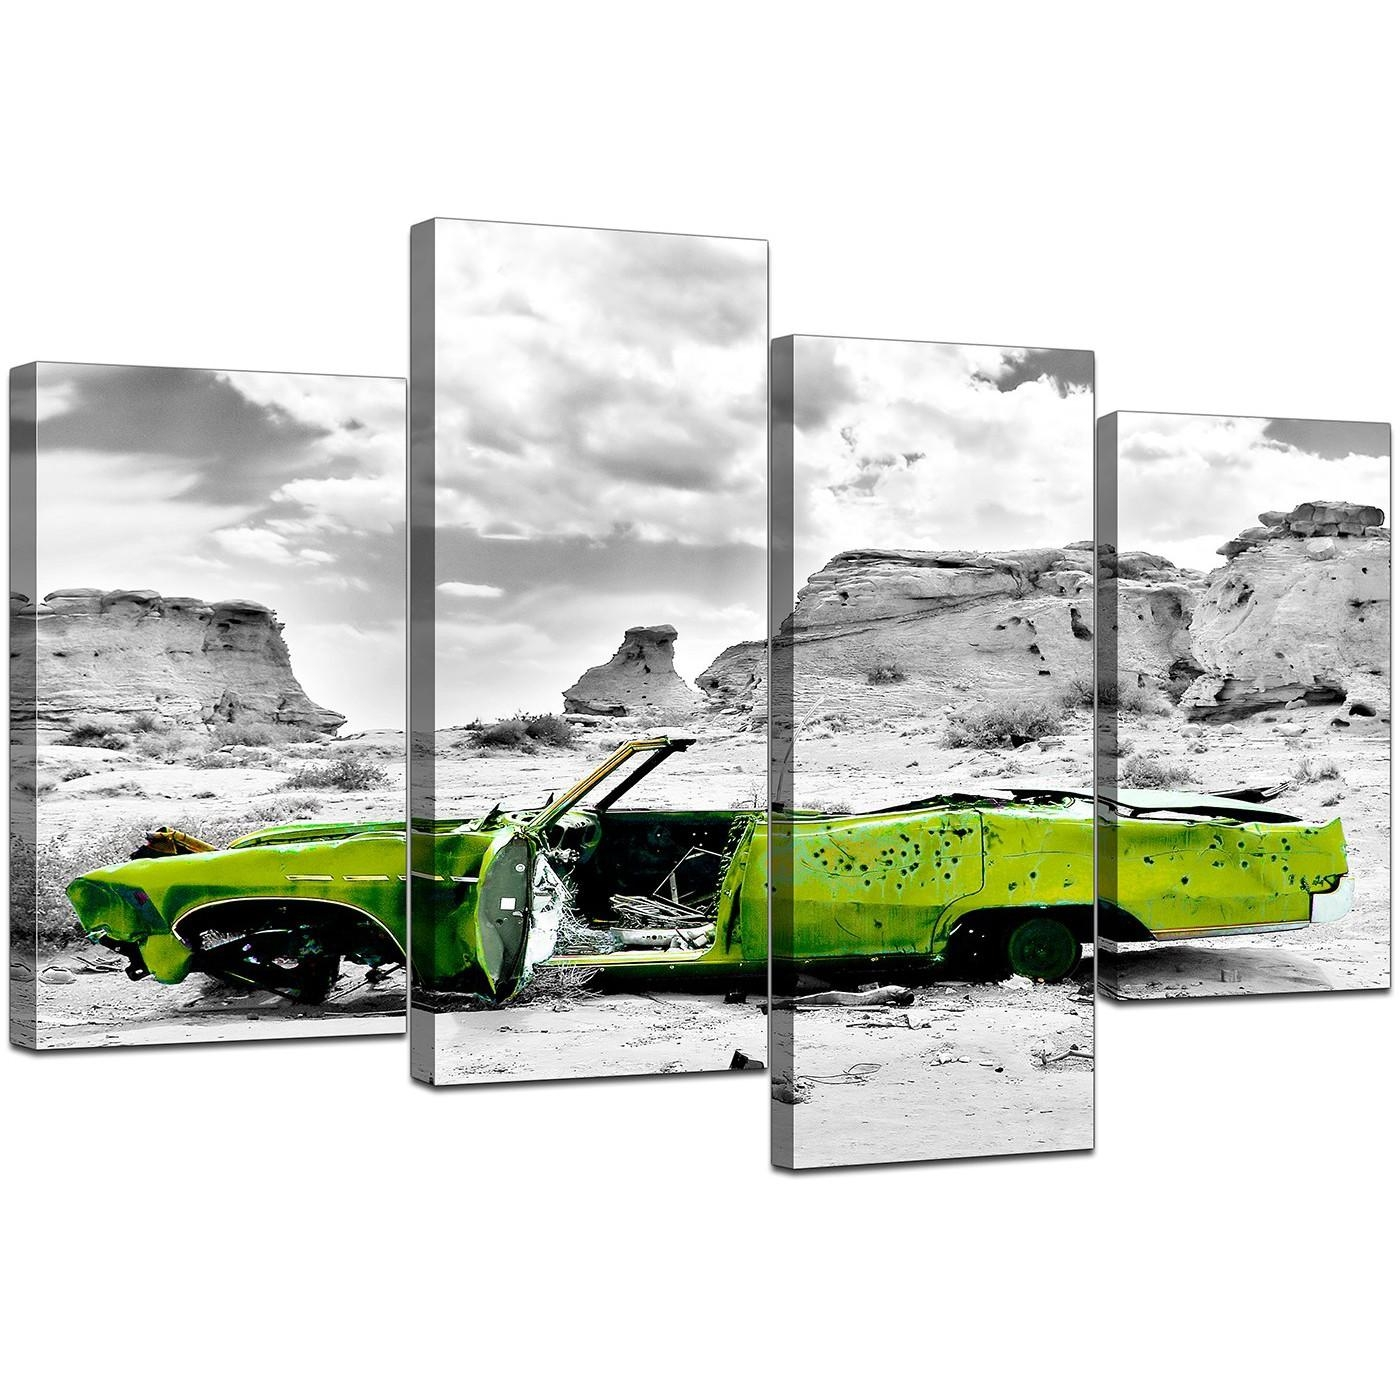 Canvas Art Of Green Car In Black & White For Your Office Throughout Cheap Black And White Wall Art (View 7 of 20)